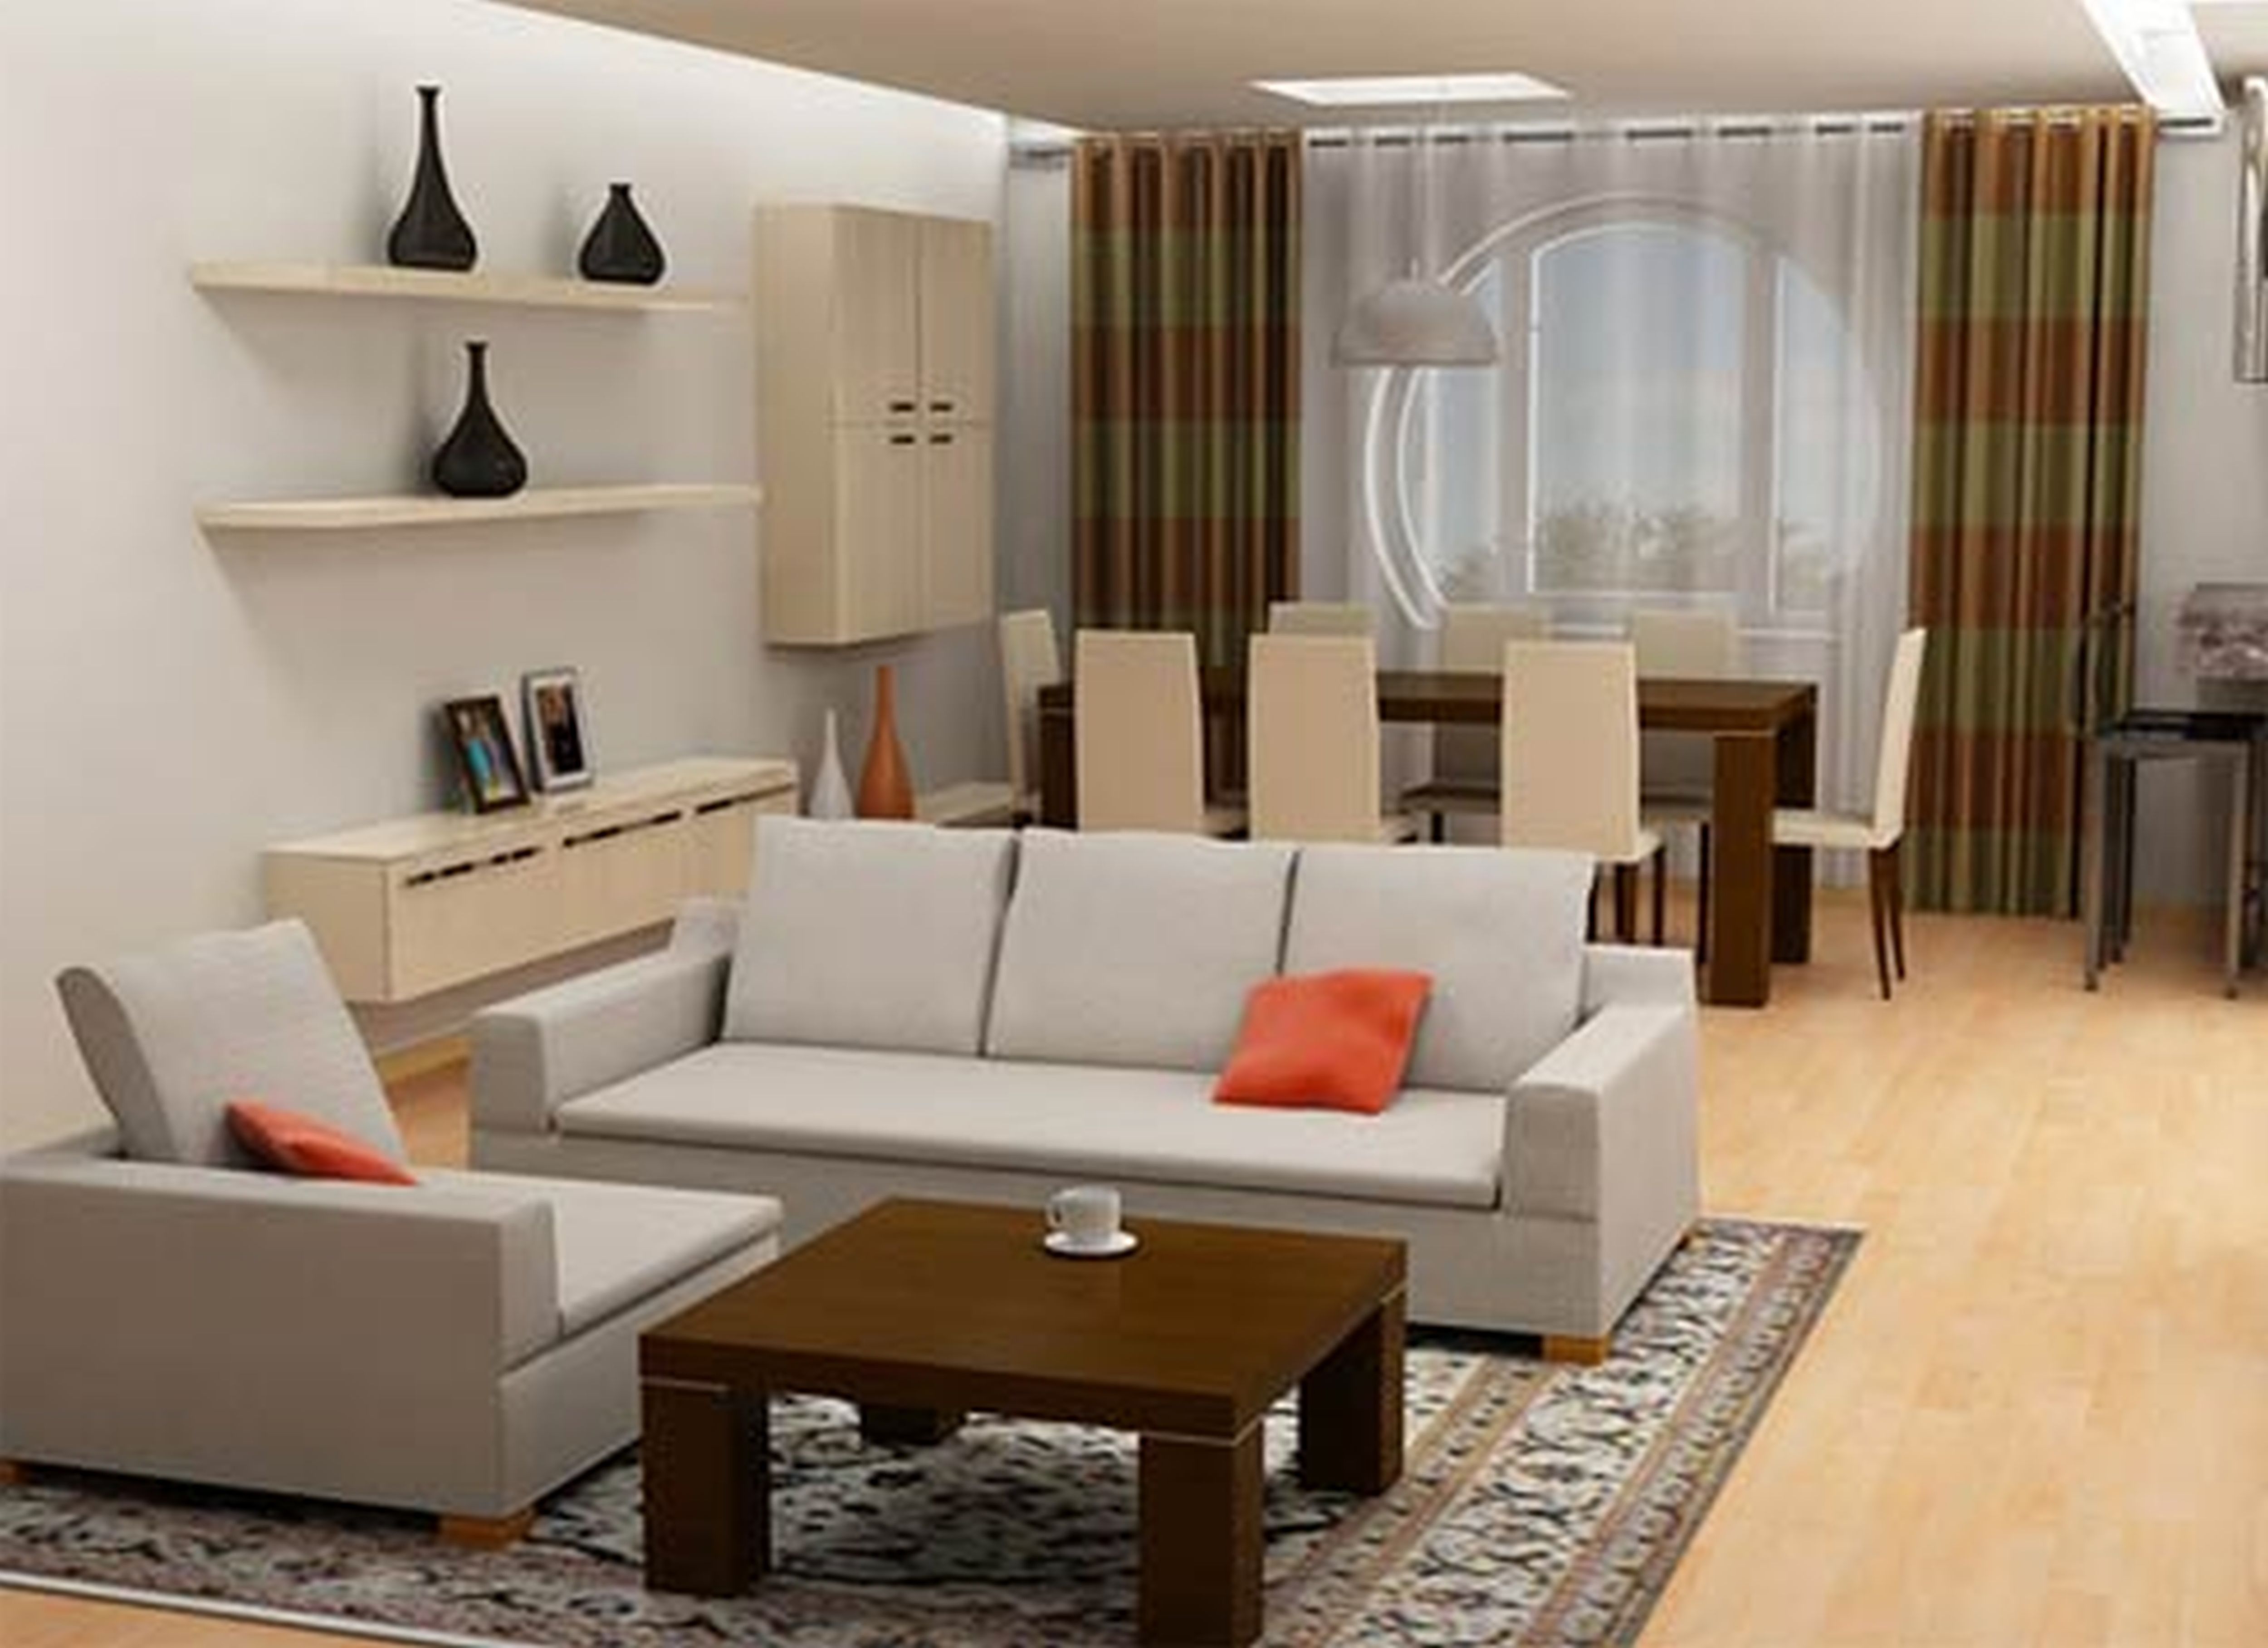 Room decor best com affordable dining combo has ideas with white sofa beside to decorate your house home plans and designs interior design for also how arrange small living rh pinterest